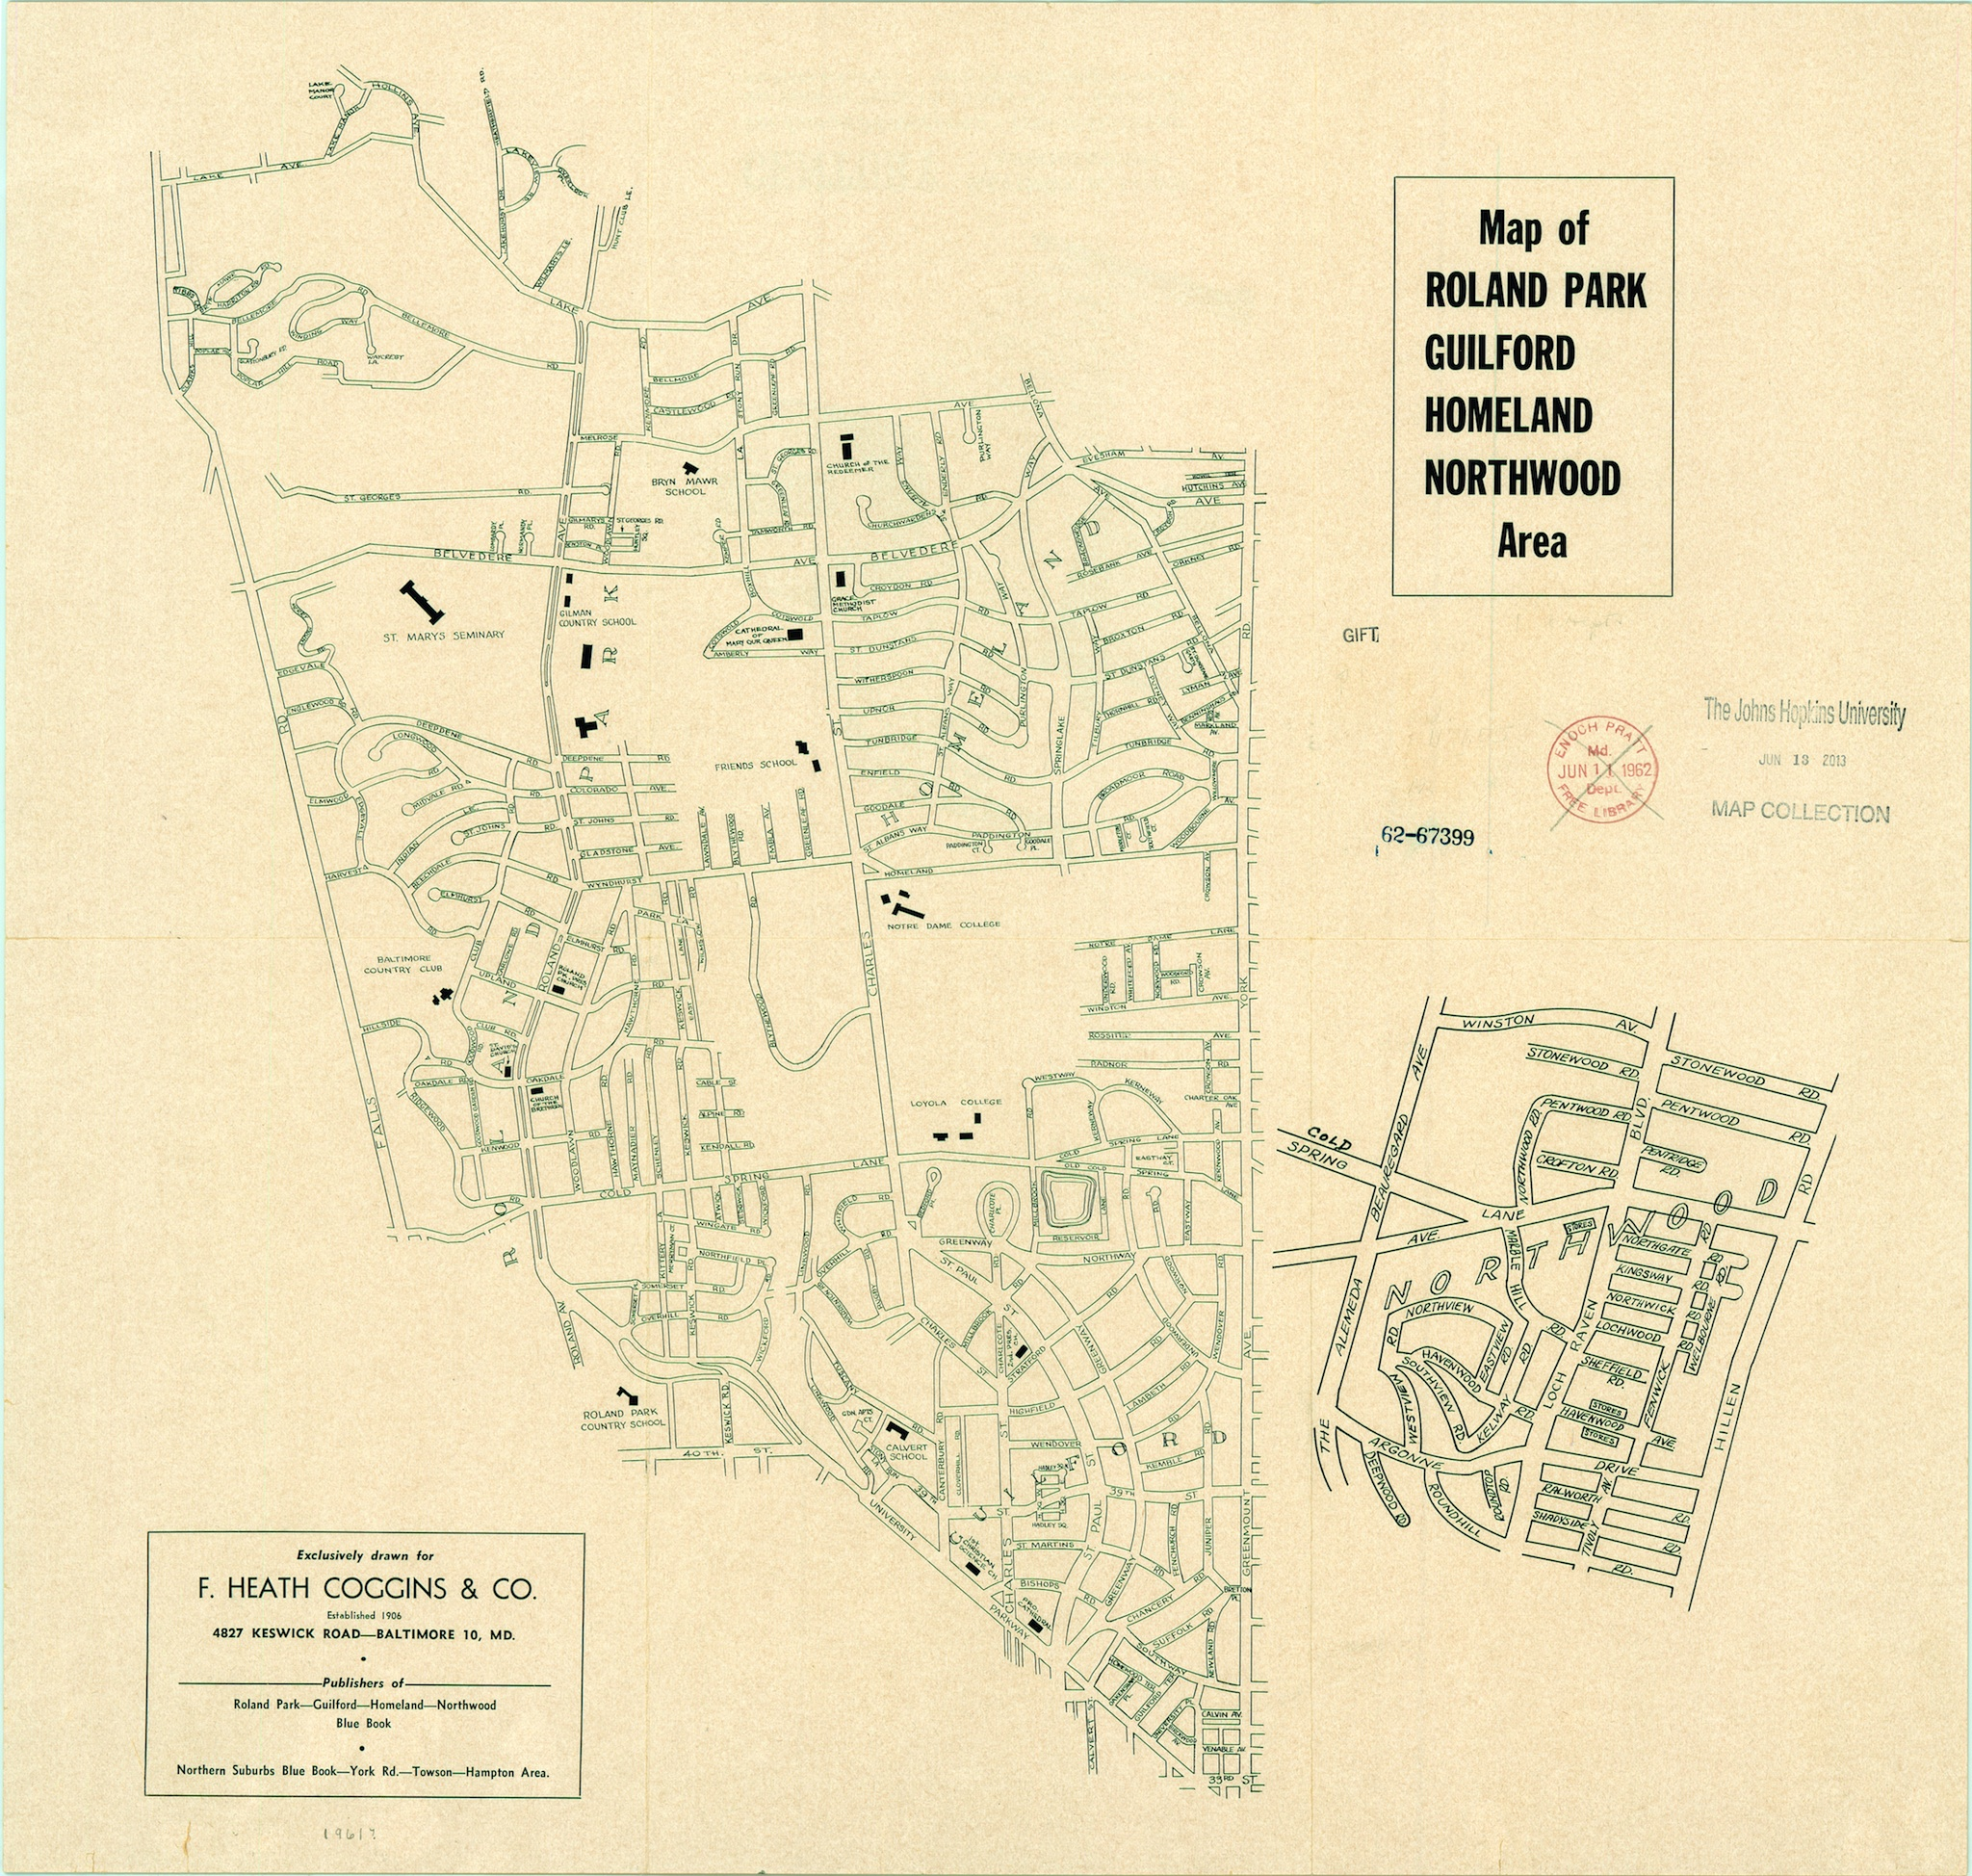 Map of Roland Park in 1961